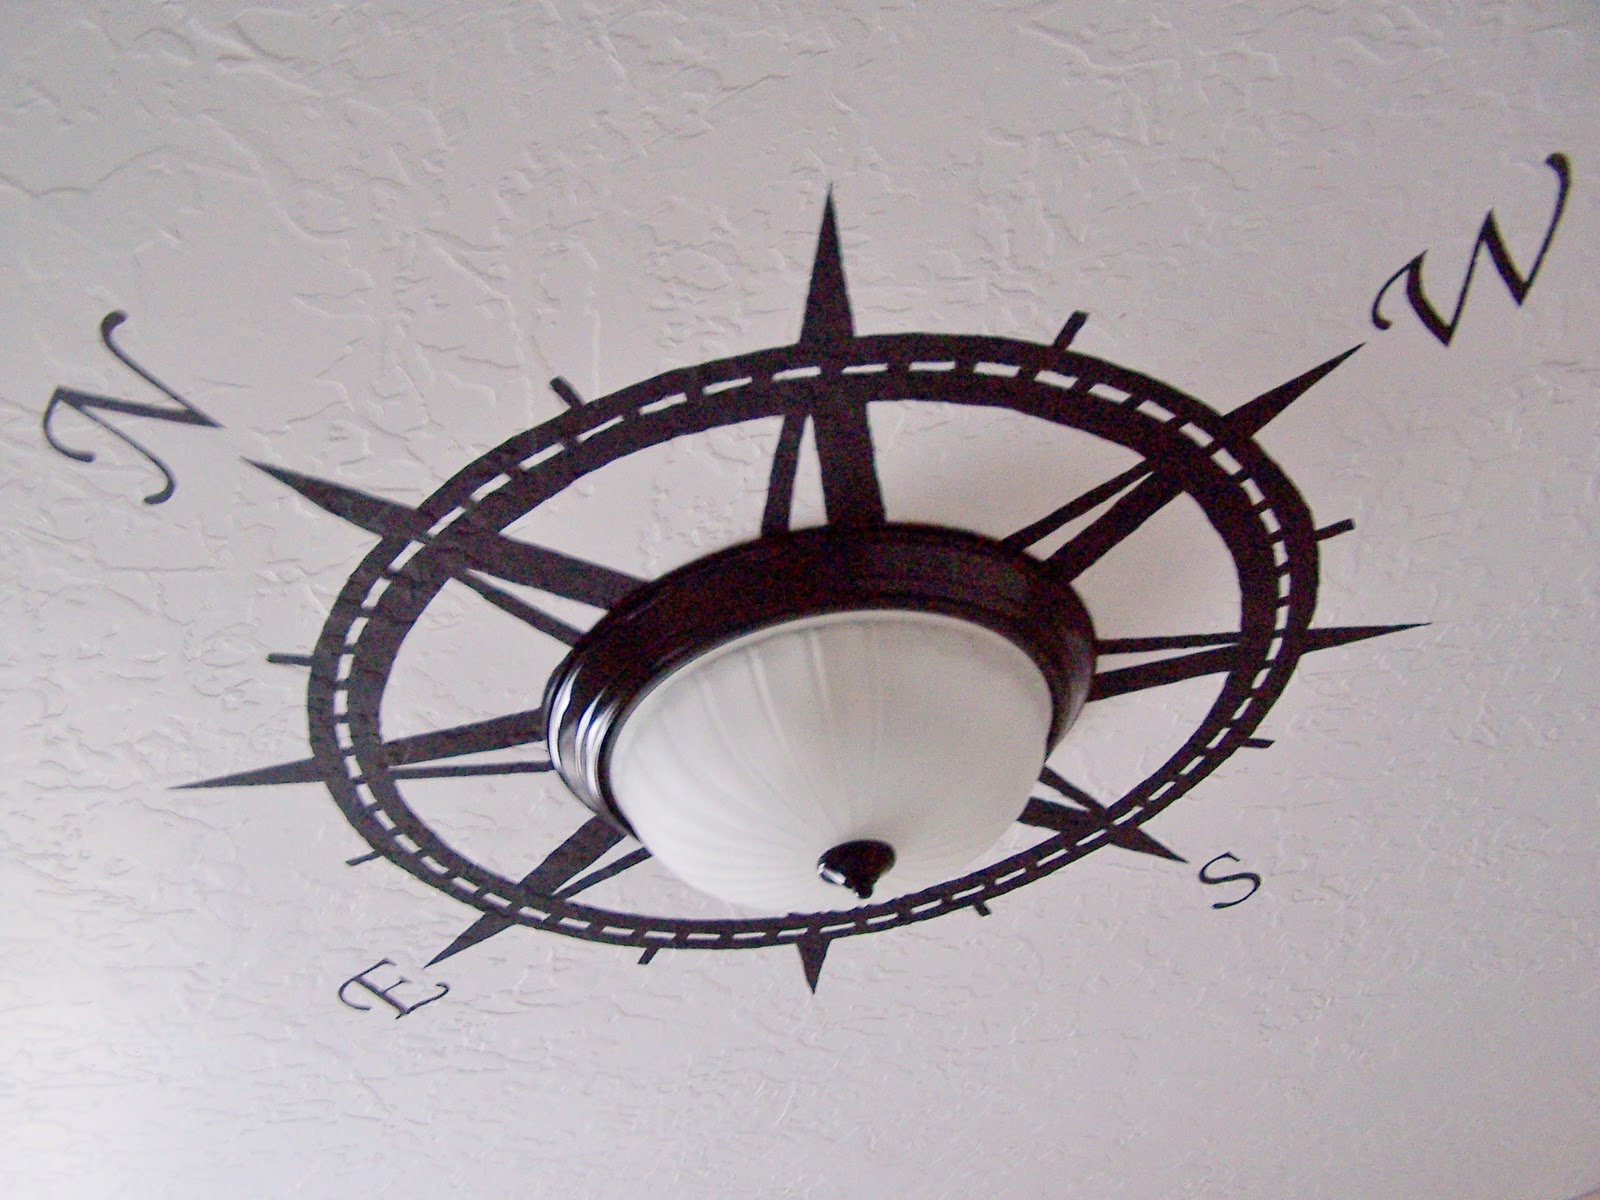 Nautical Bathroom Light Fixture: Batchelors Way: Up Date On Pirate Room